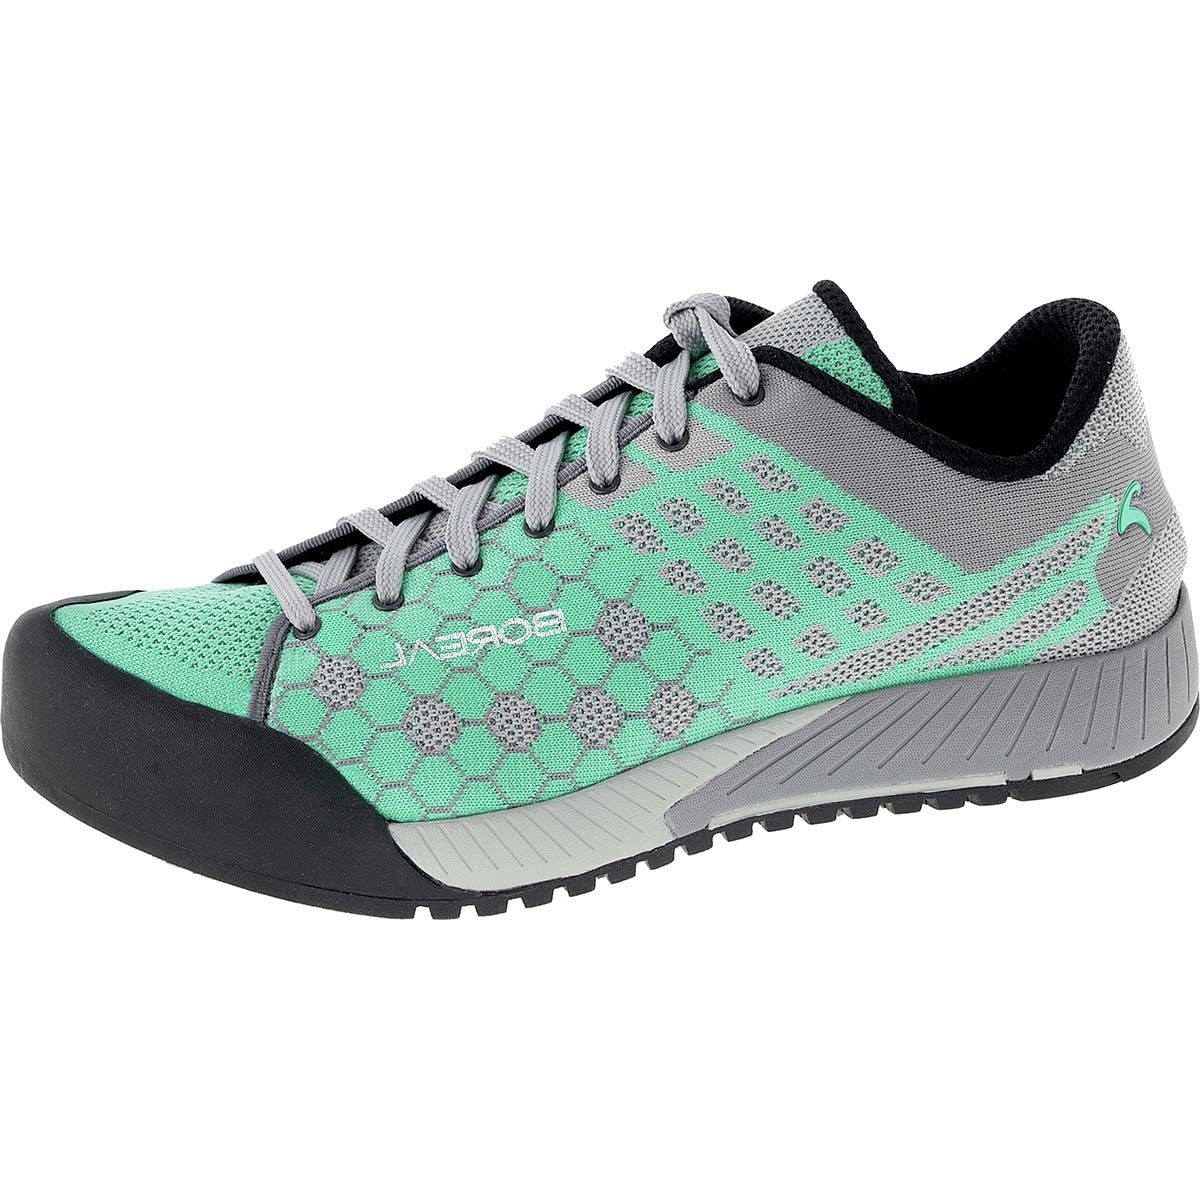 Boreal Salsa Shoe - Women's